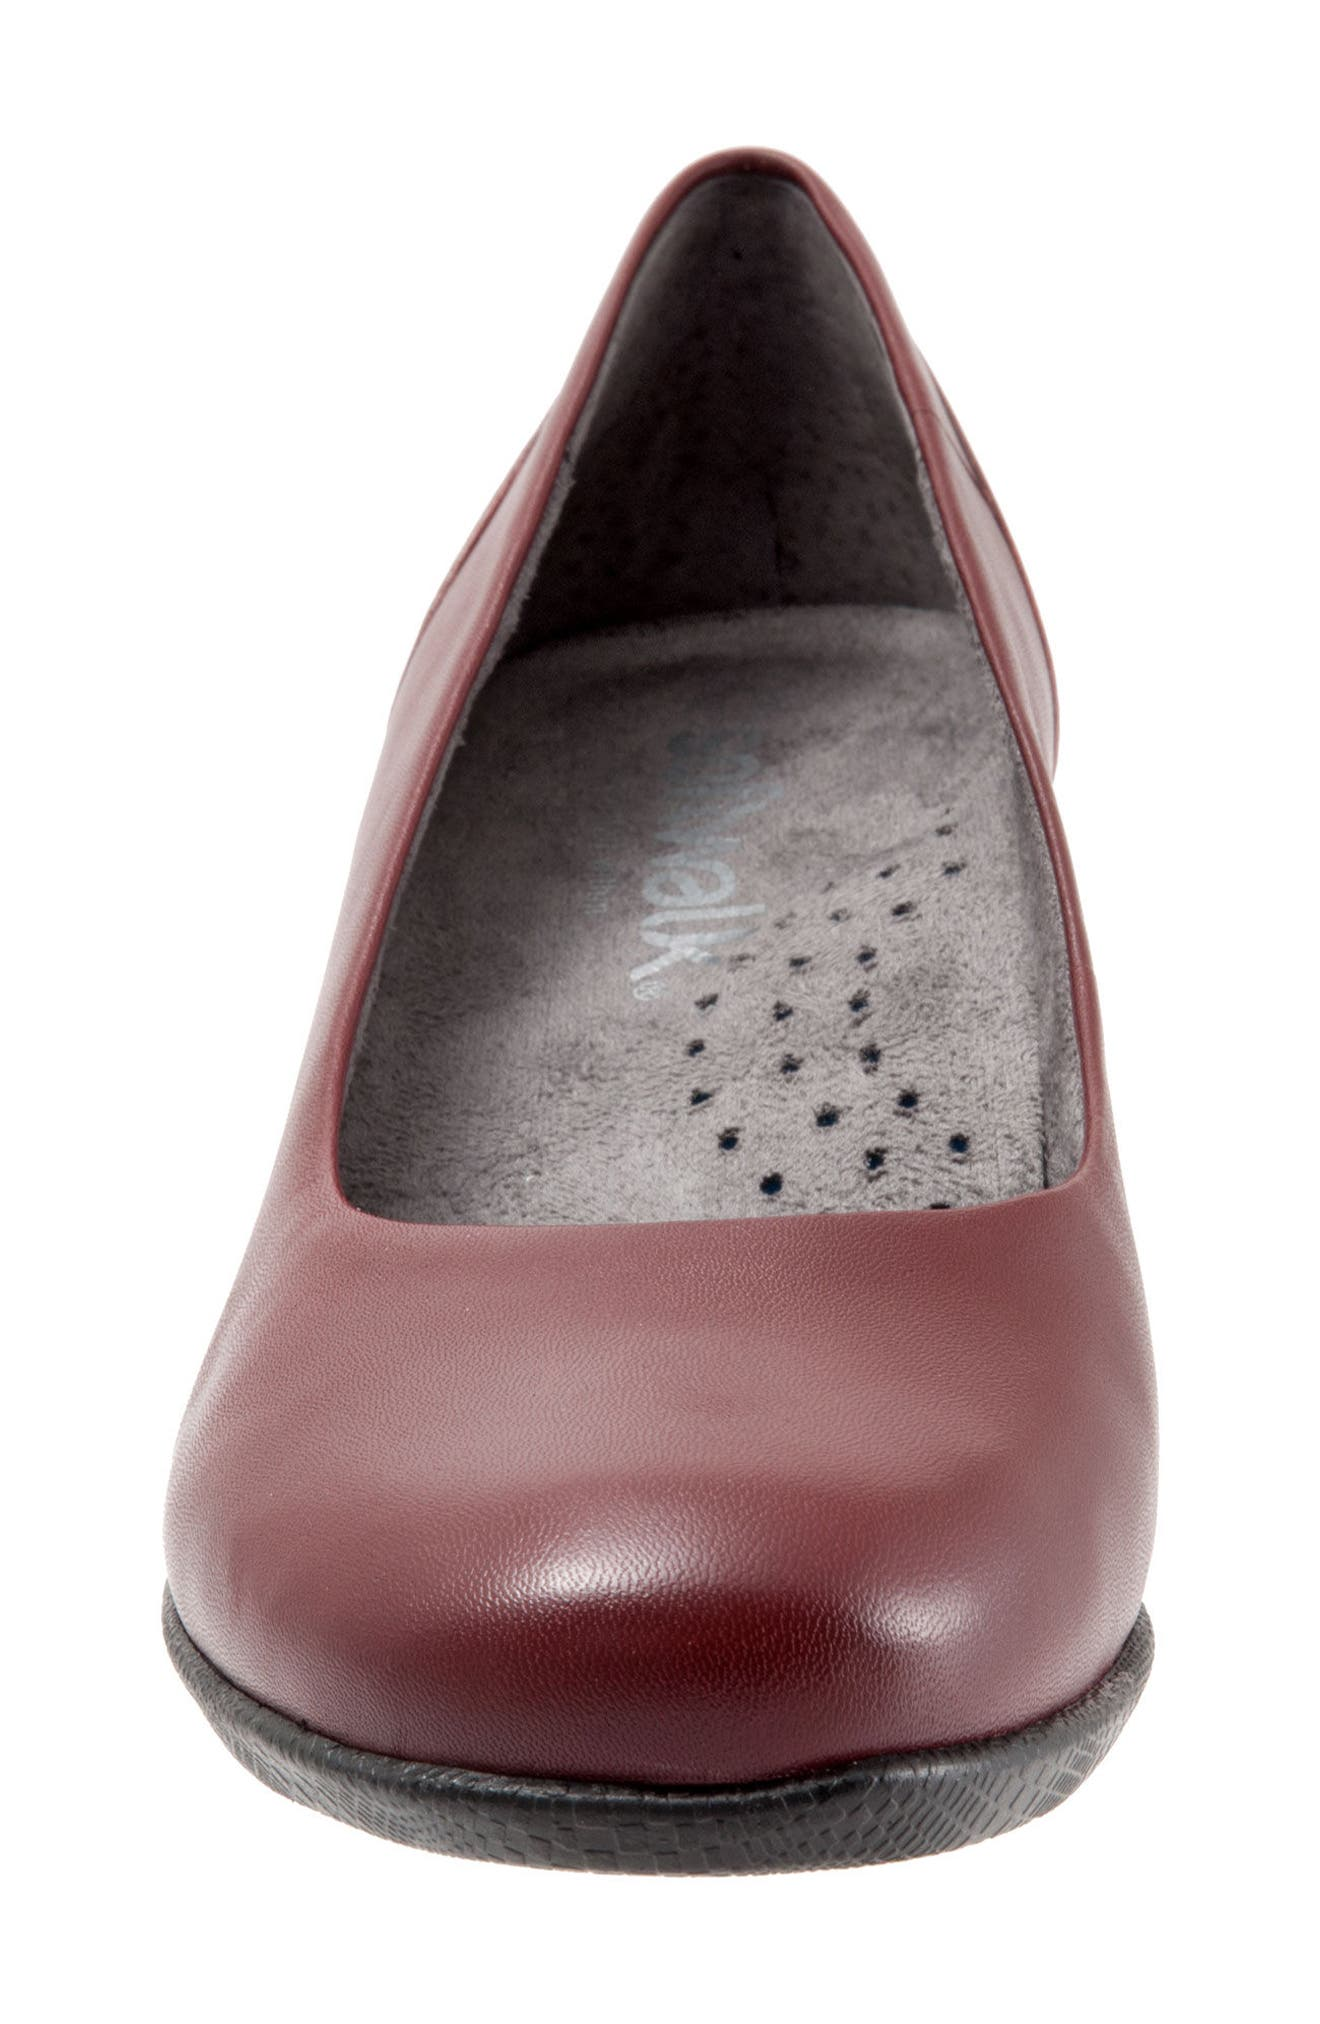 Imperial II Pump,                             Alternate thumbnail 5, color,                             Dark Red Leather